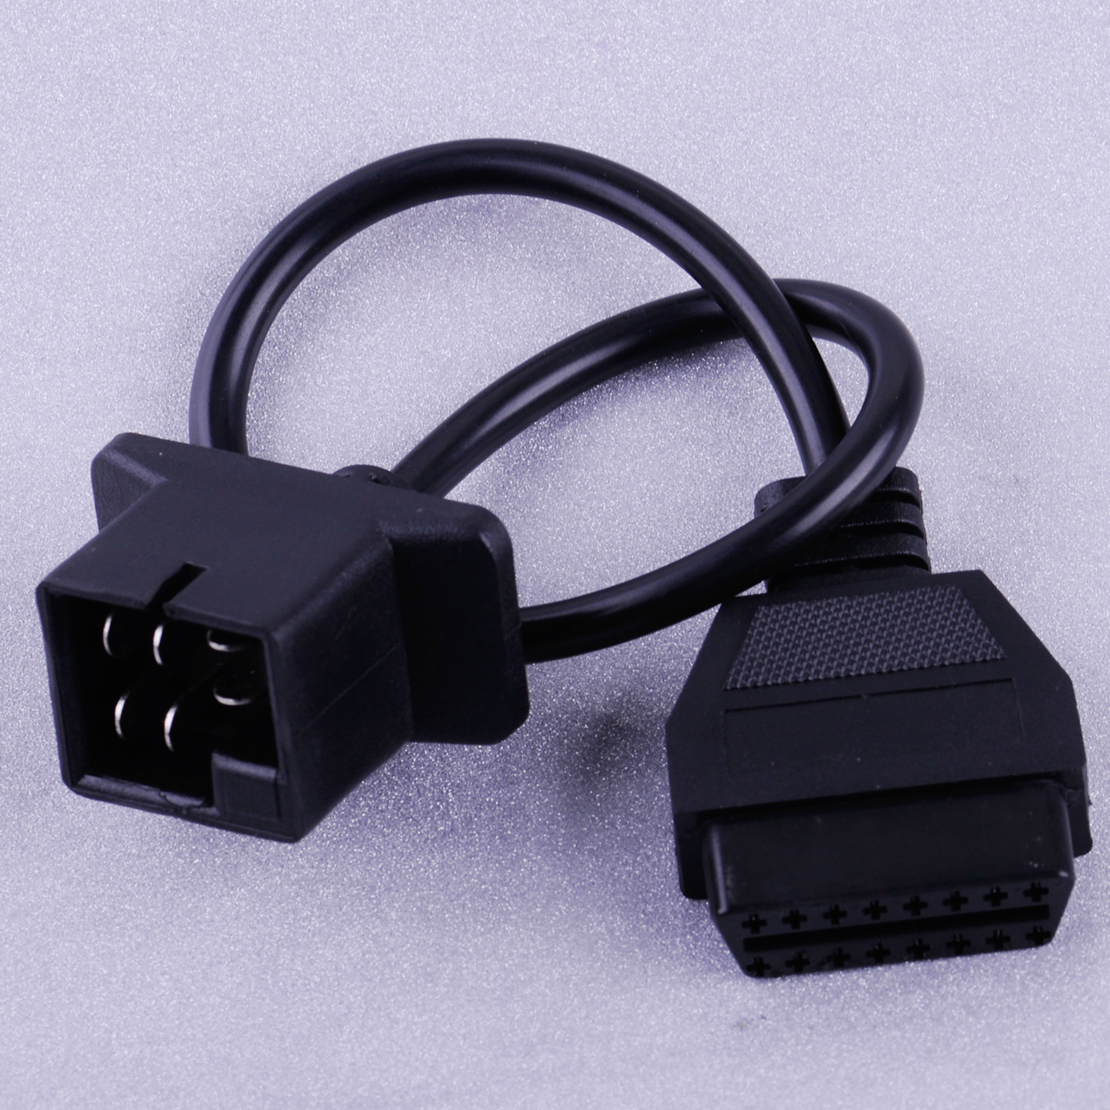 Details about 6 Pin OBD to OBD2 Check Engine Adapter Cable Code Reader For  Chrysler Jeep Dodge